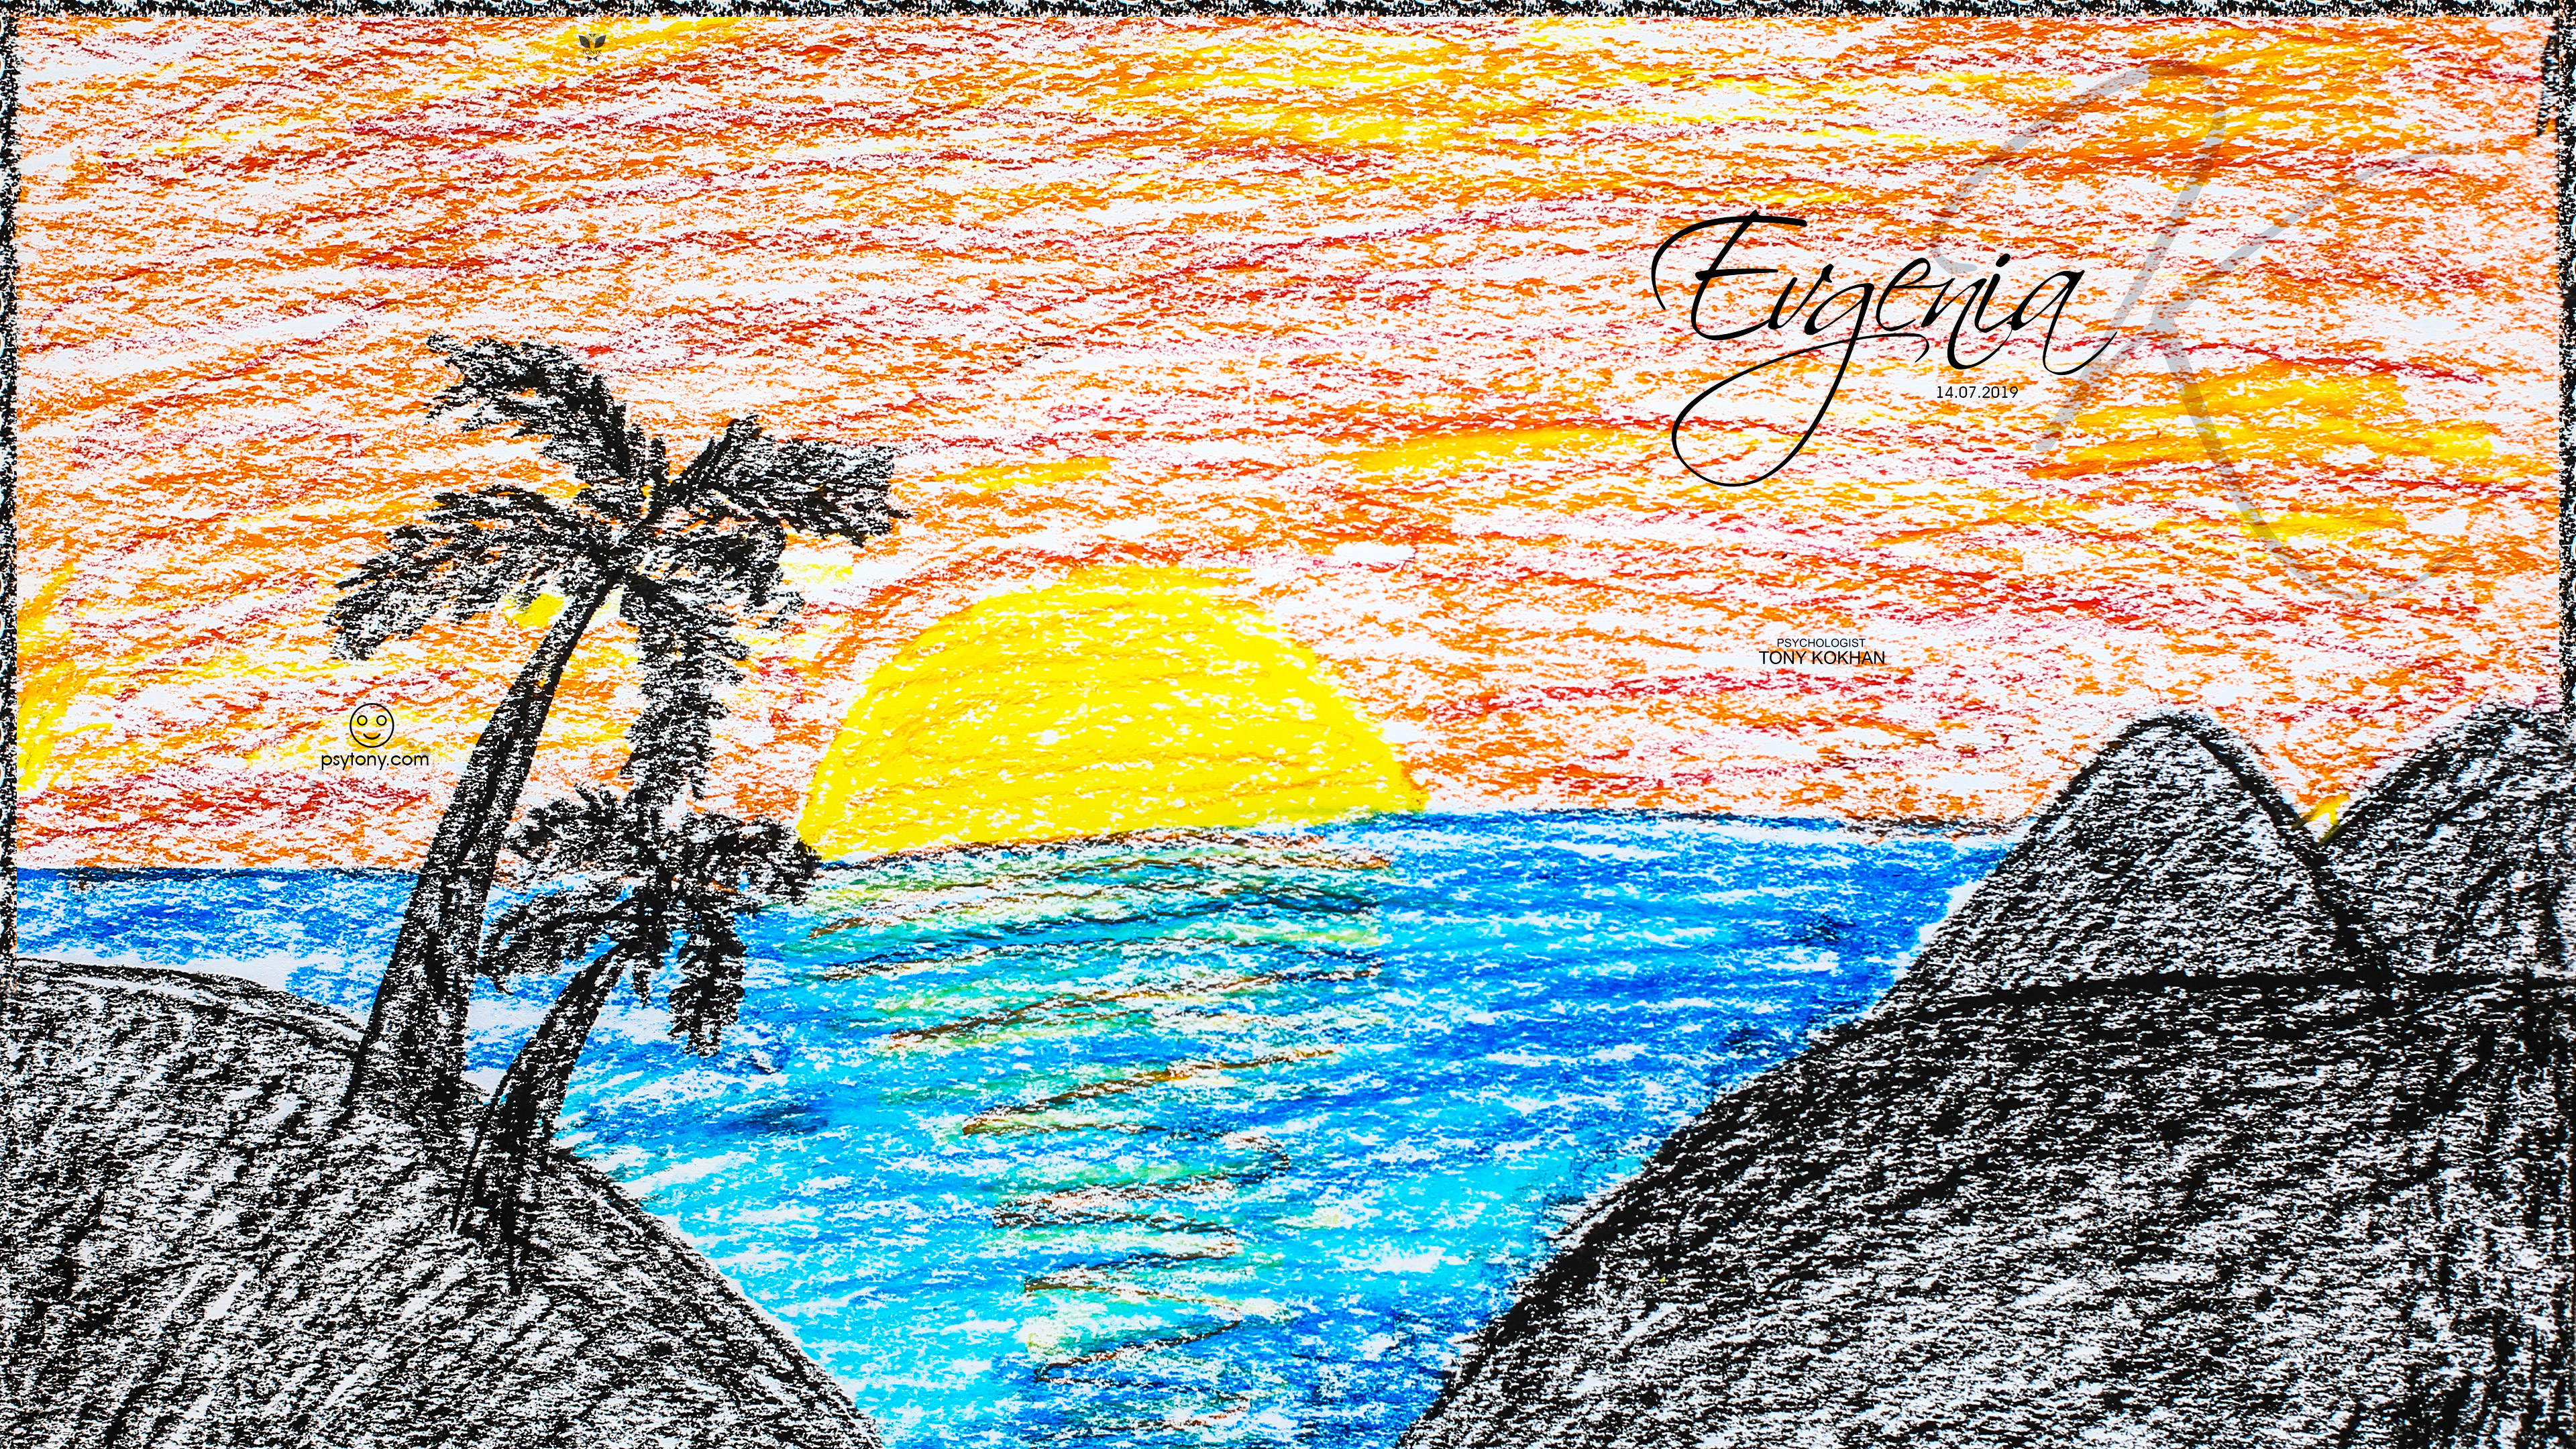 Evgenia-Soul-Girl-Sunset-Palm-Trees-Mountains-Hedges-Art-Style-Picture-Drawing-With-Pastel-2019-Multicolors-4K-Wallpapers-by-Psychologist-Tony-Kokhan-www.psytony.com-image